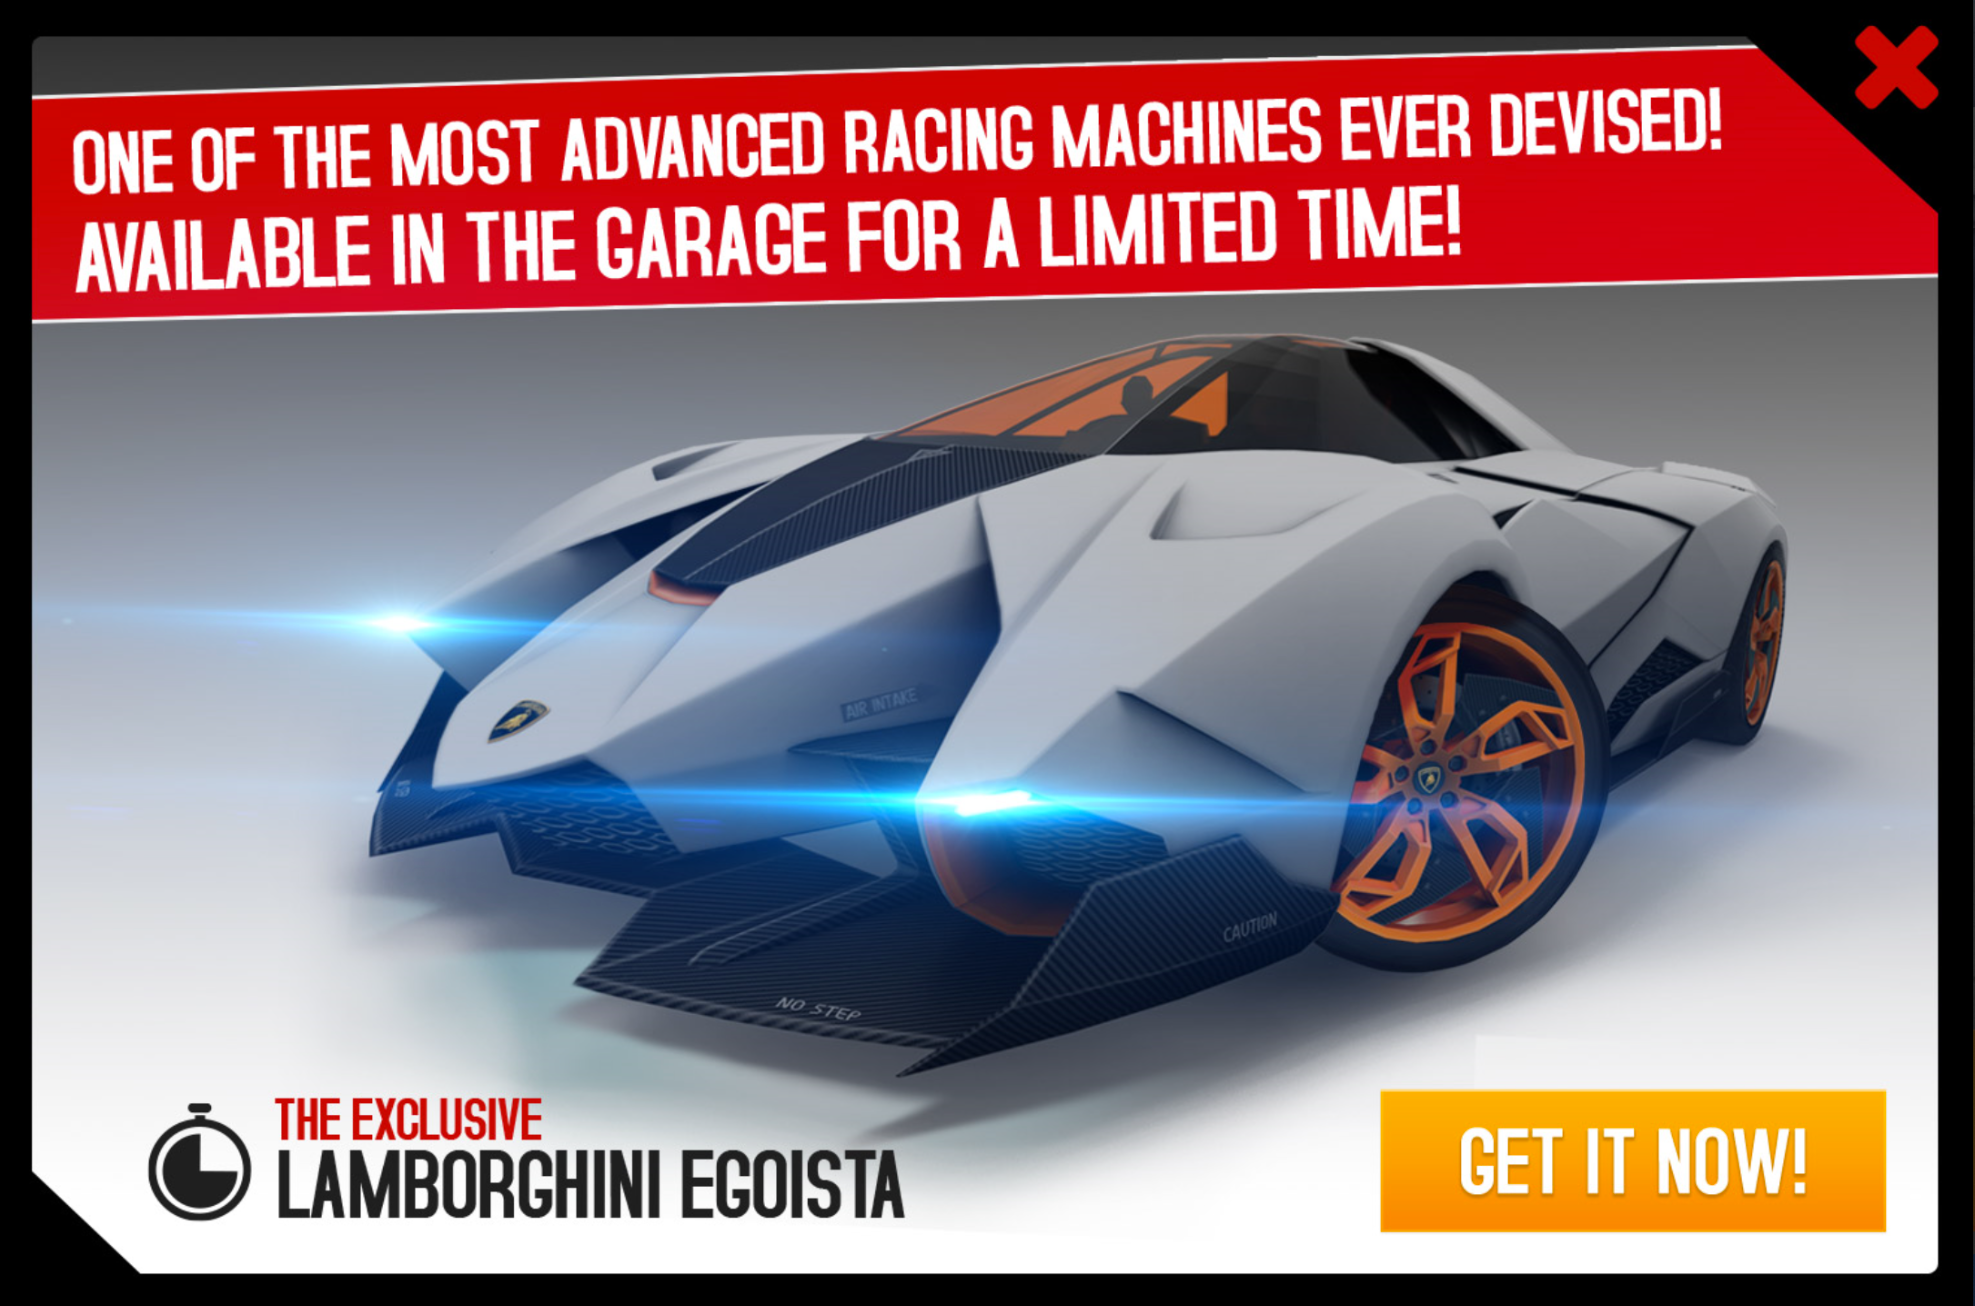 Lamborghini Egoista Miscellaneous Asphalt Wiki Fandom Powered By